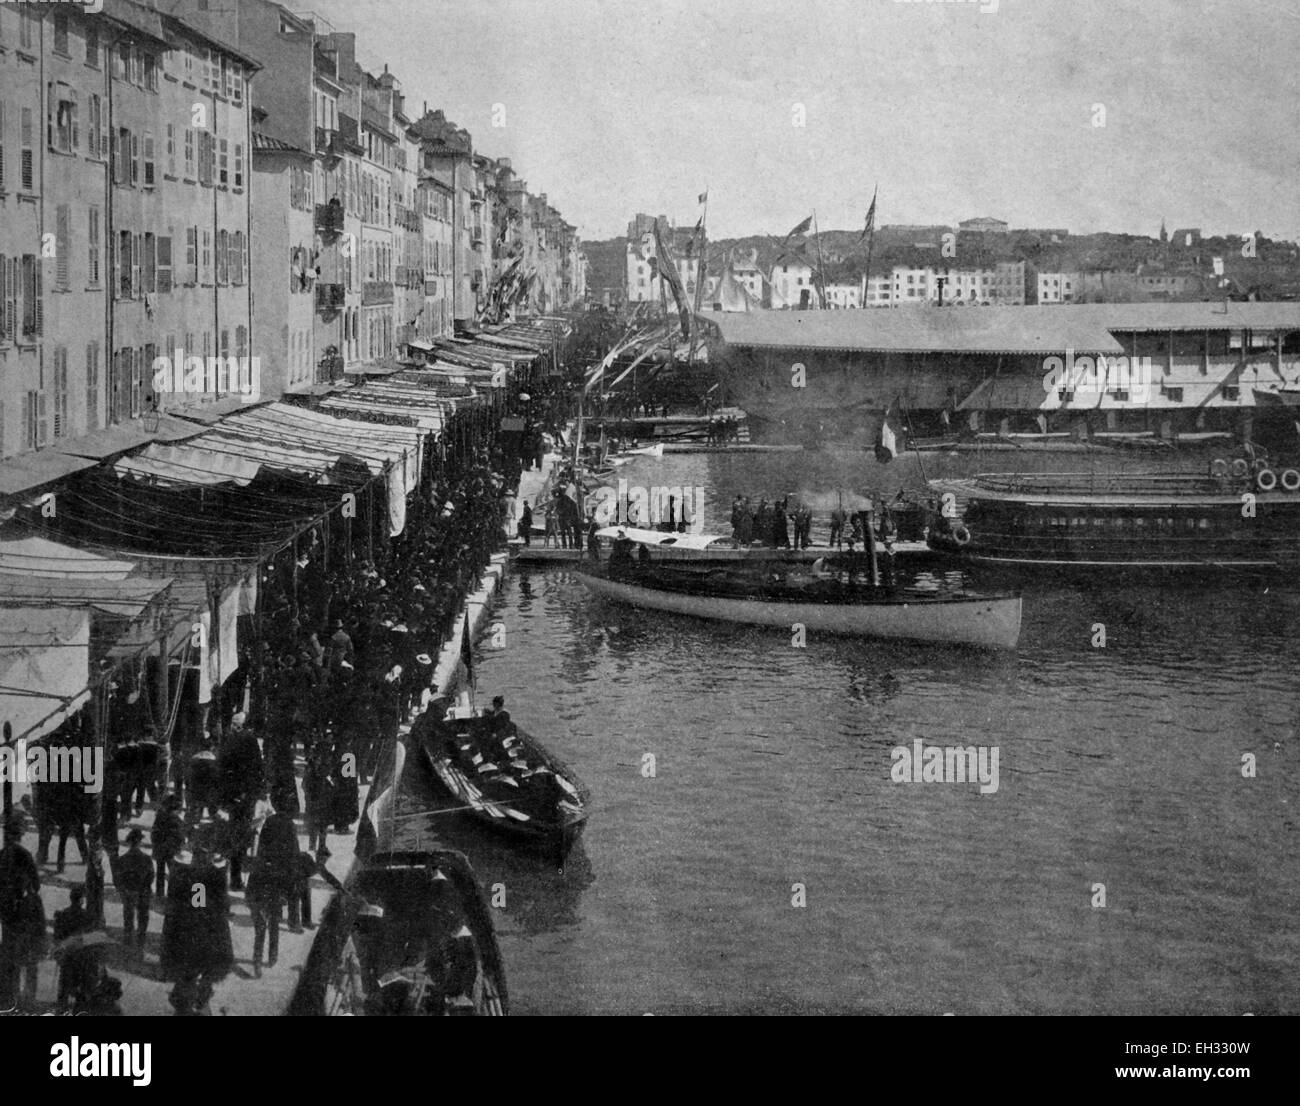 Early autotype of Toulon, Provence-Alpes-Cote d'Azur, France, historical picture, 1884 - Stock Image